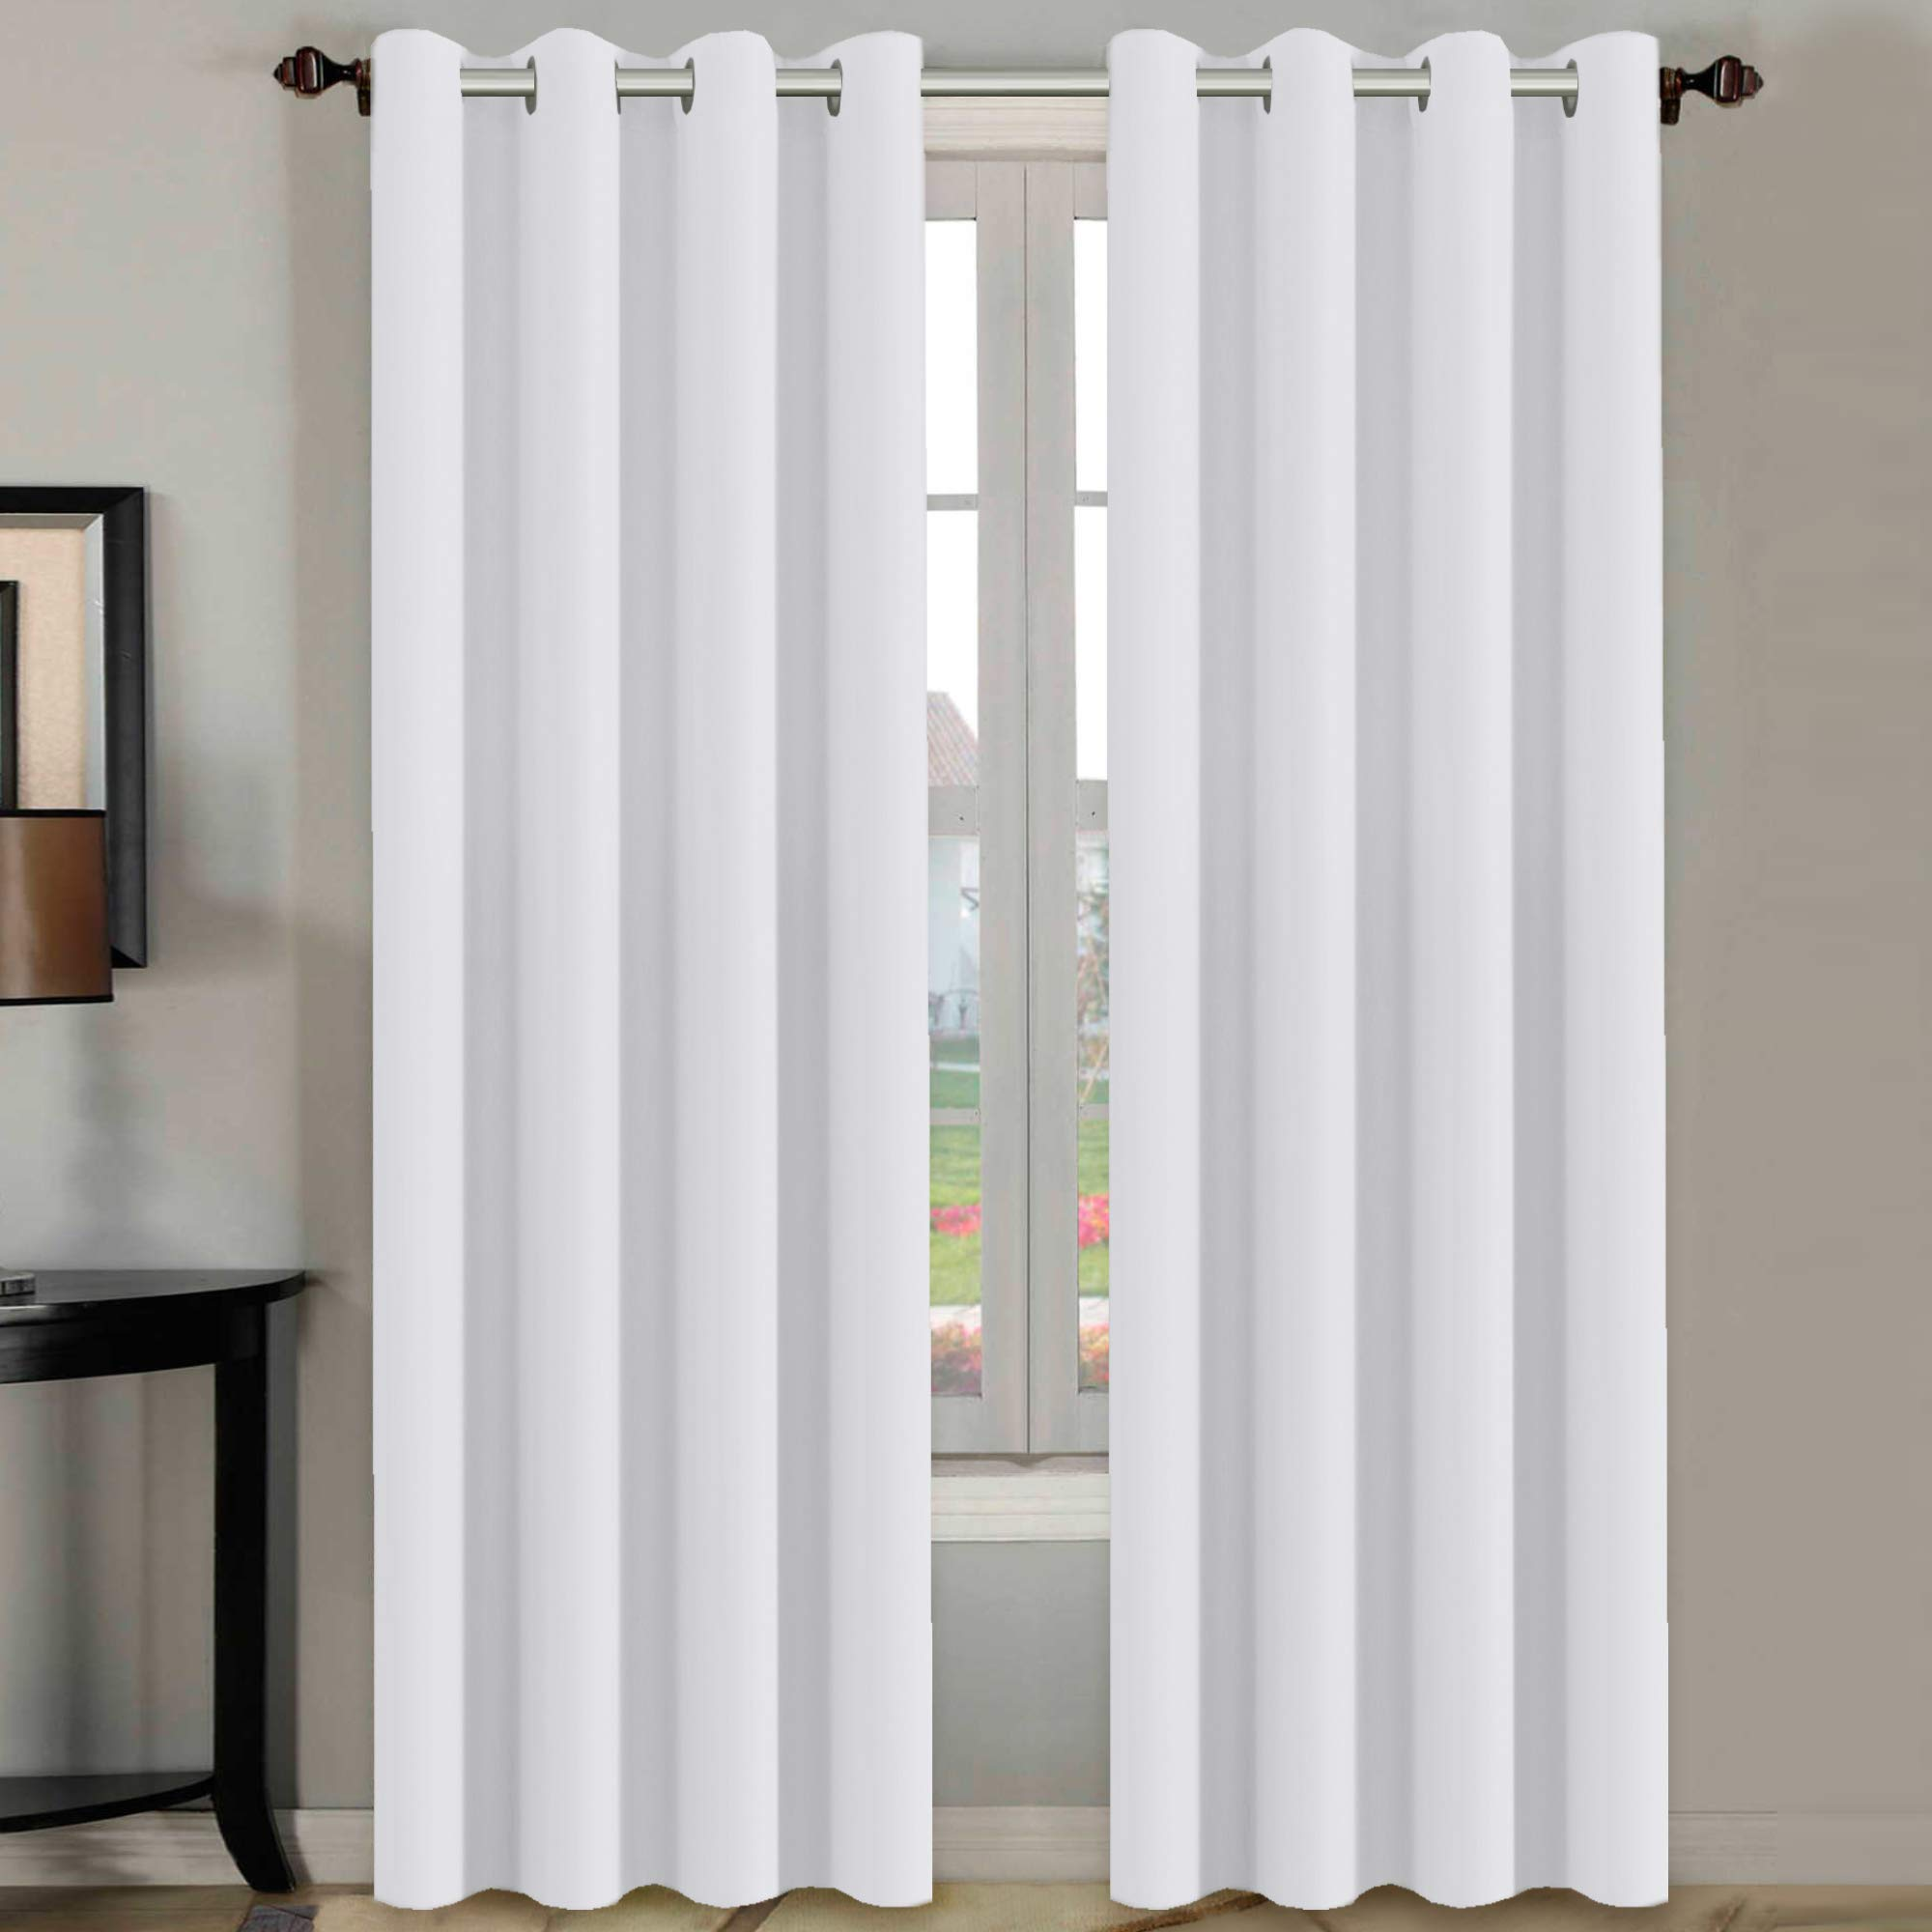 H.VERSAILTEX White Curtains 96 inches Long Window Treatment Panels/Drapes for Living Room, Set of 2, Grommet Top by H.VERSAILTEX